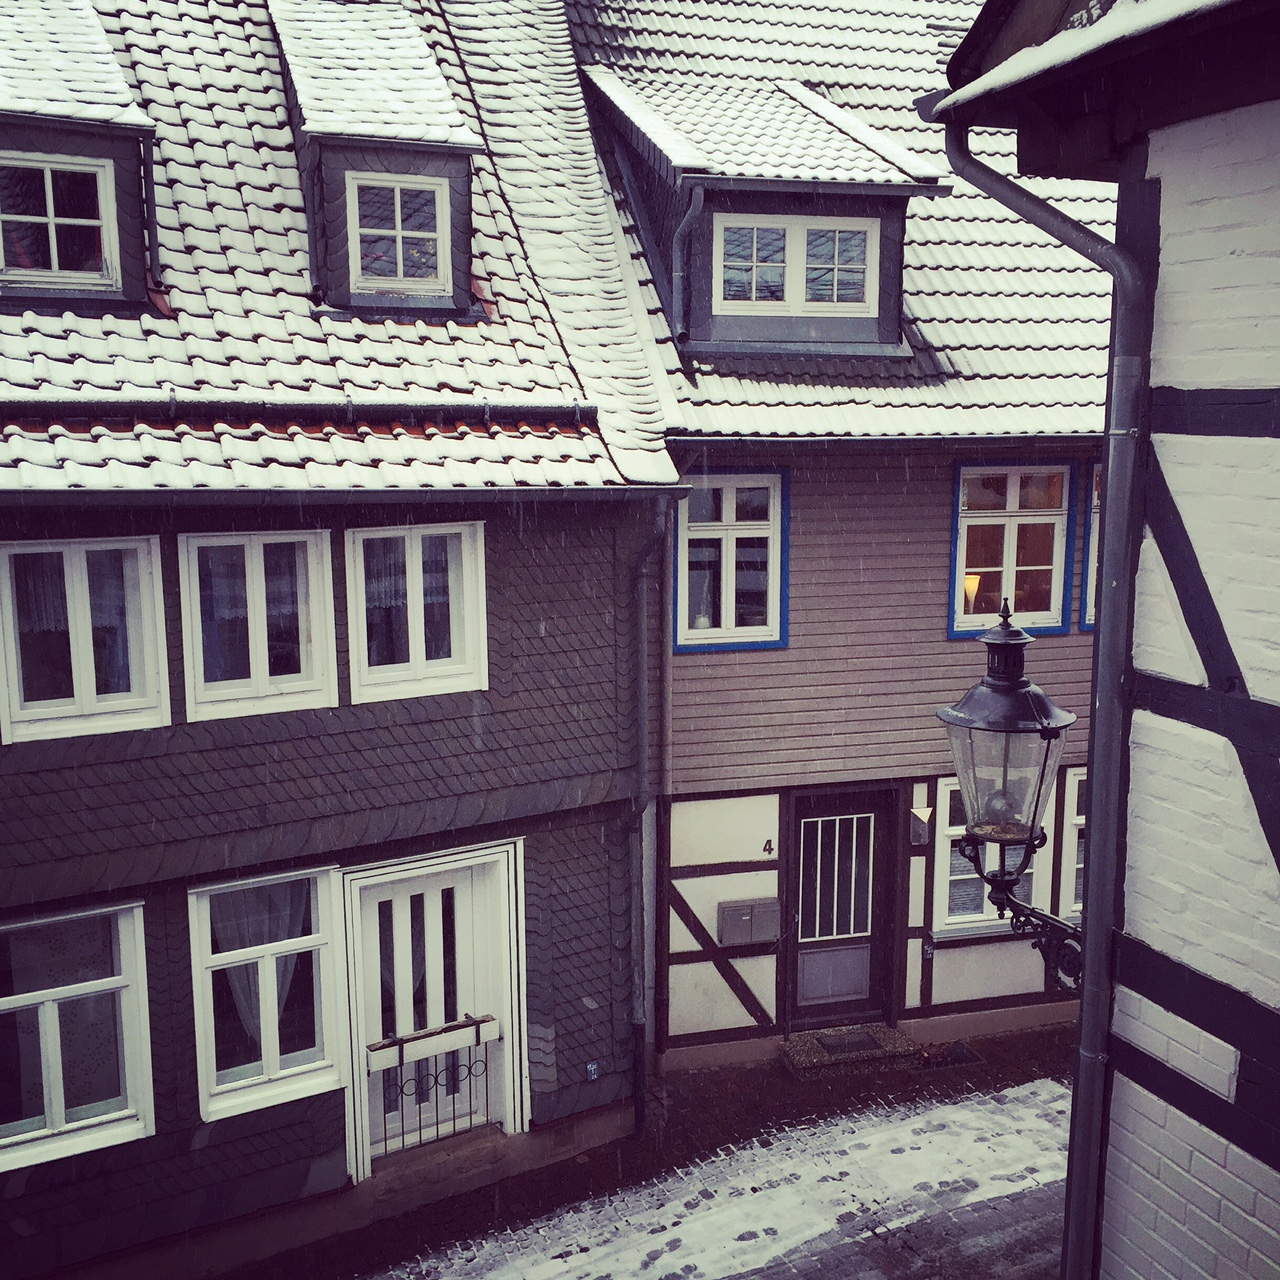 The view from my room in Goslar.